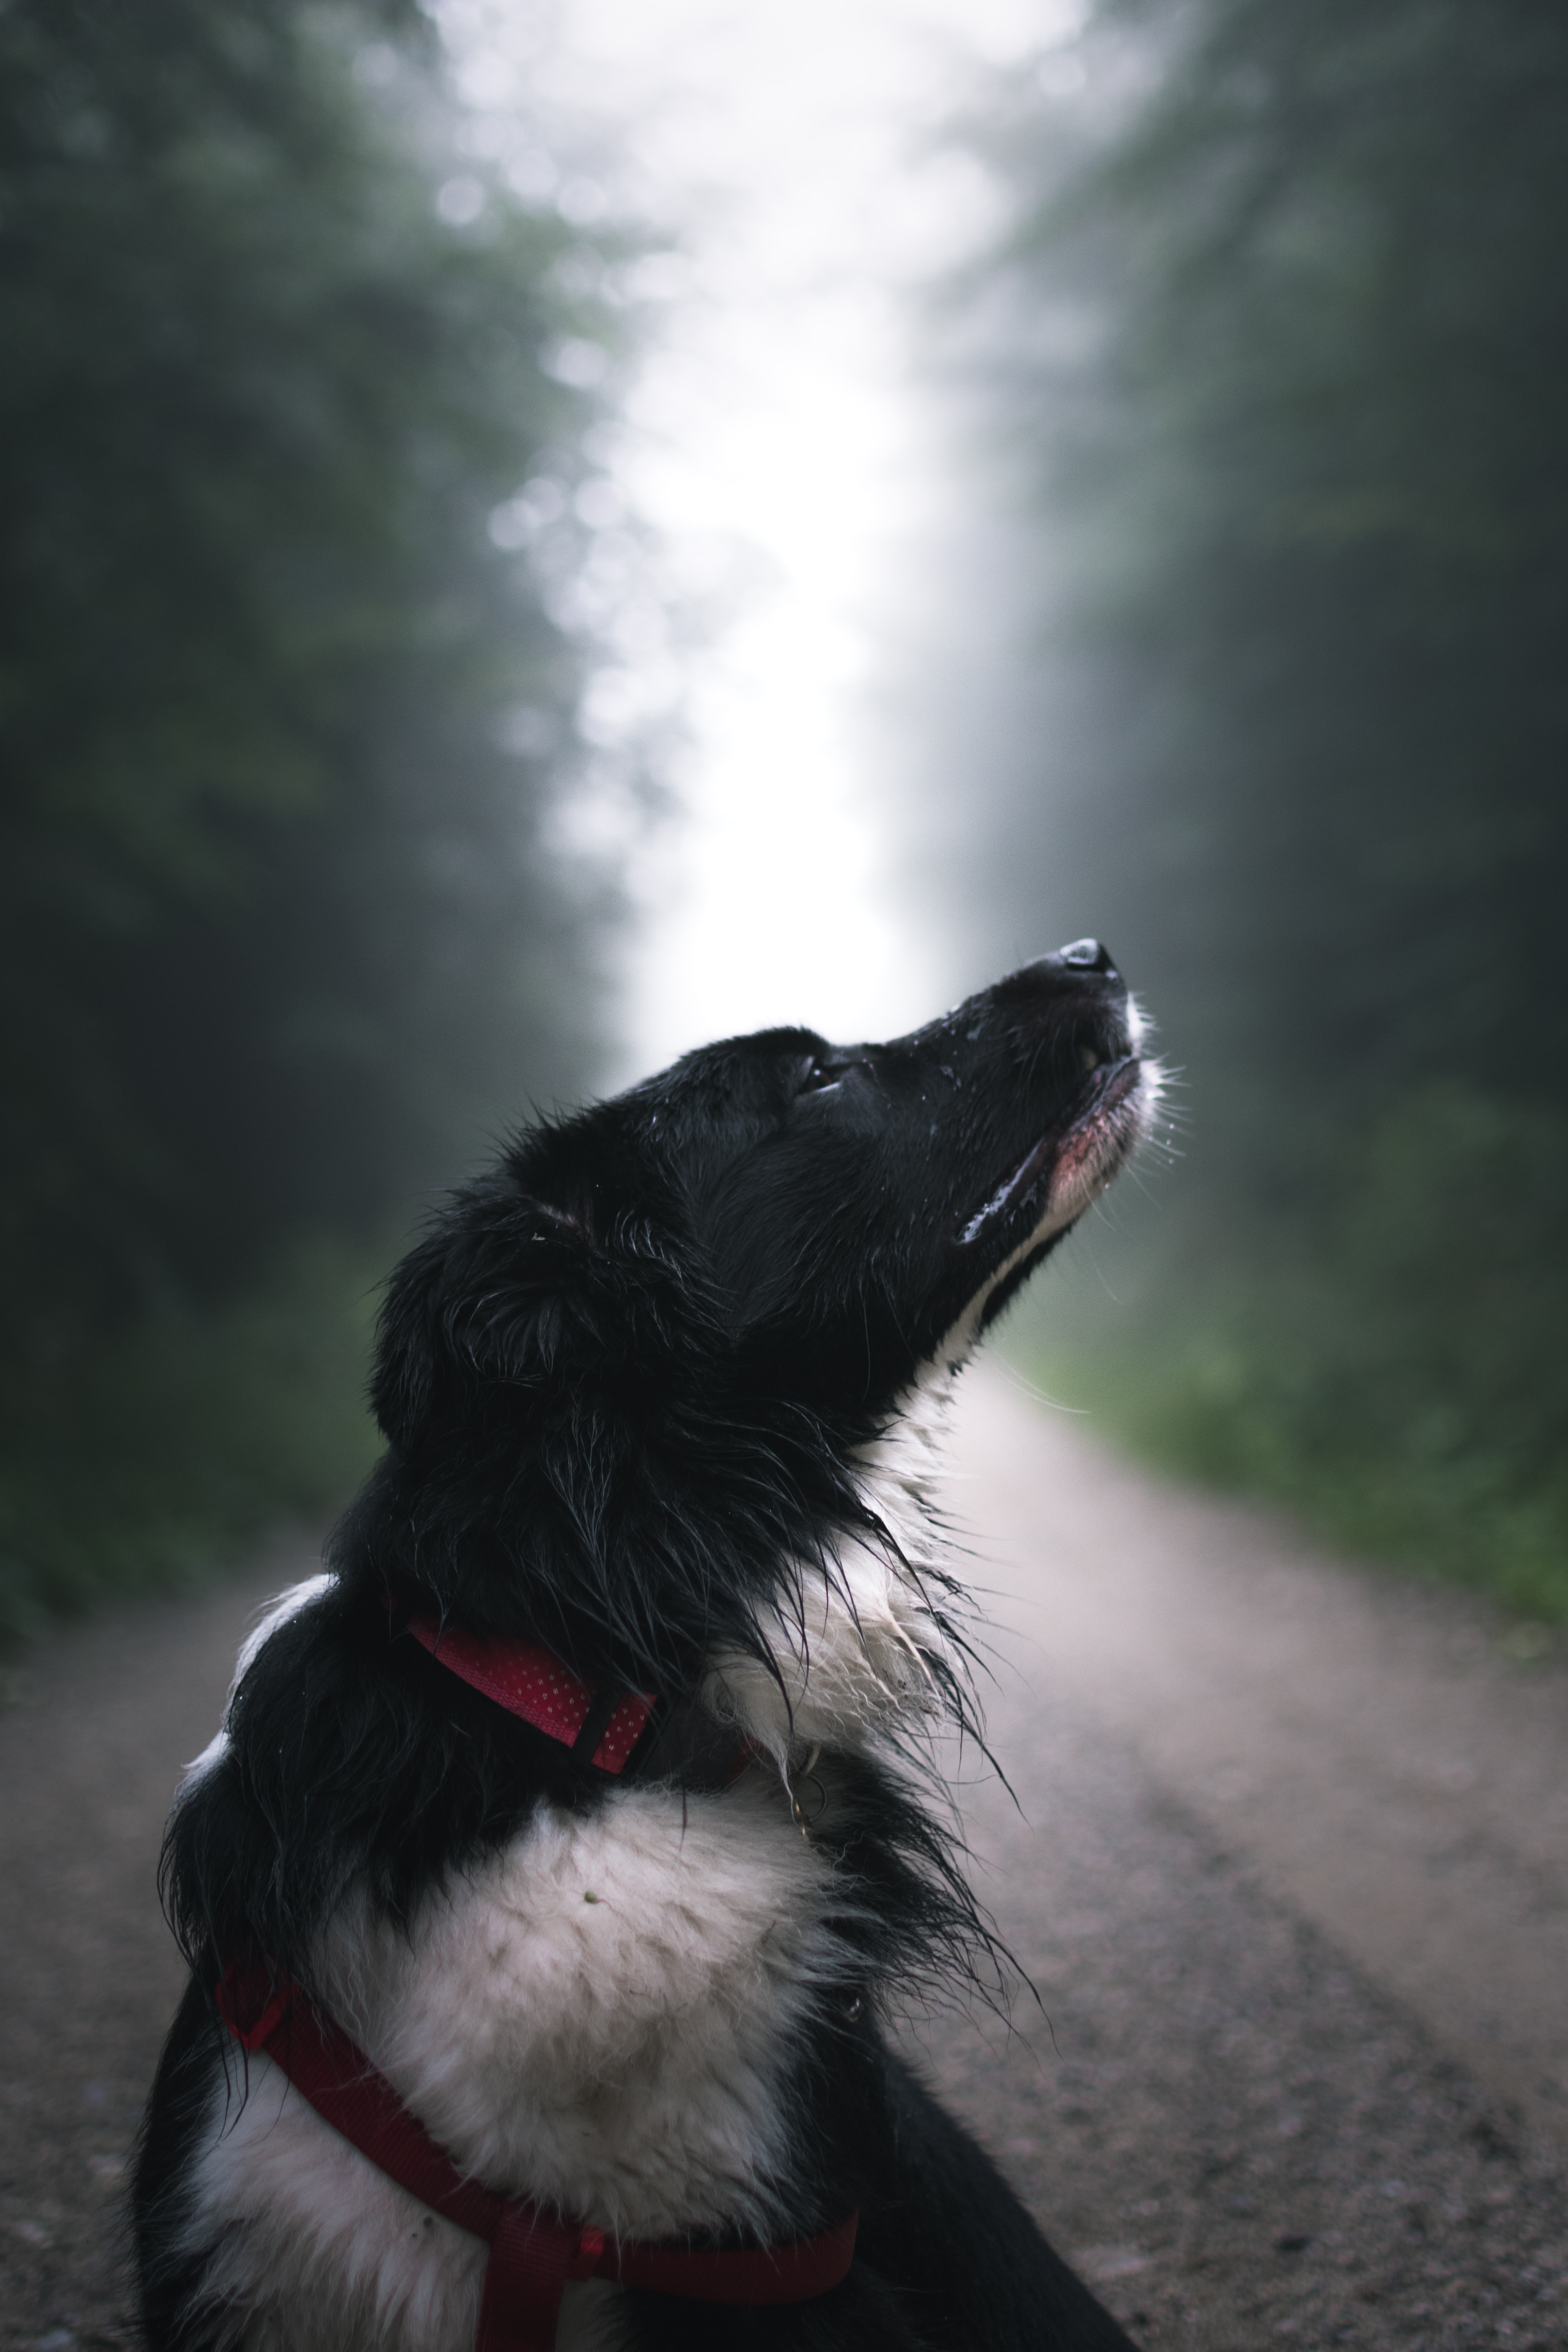 close-up photography of black and white dog on road